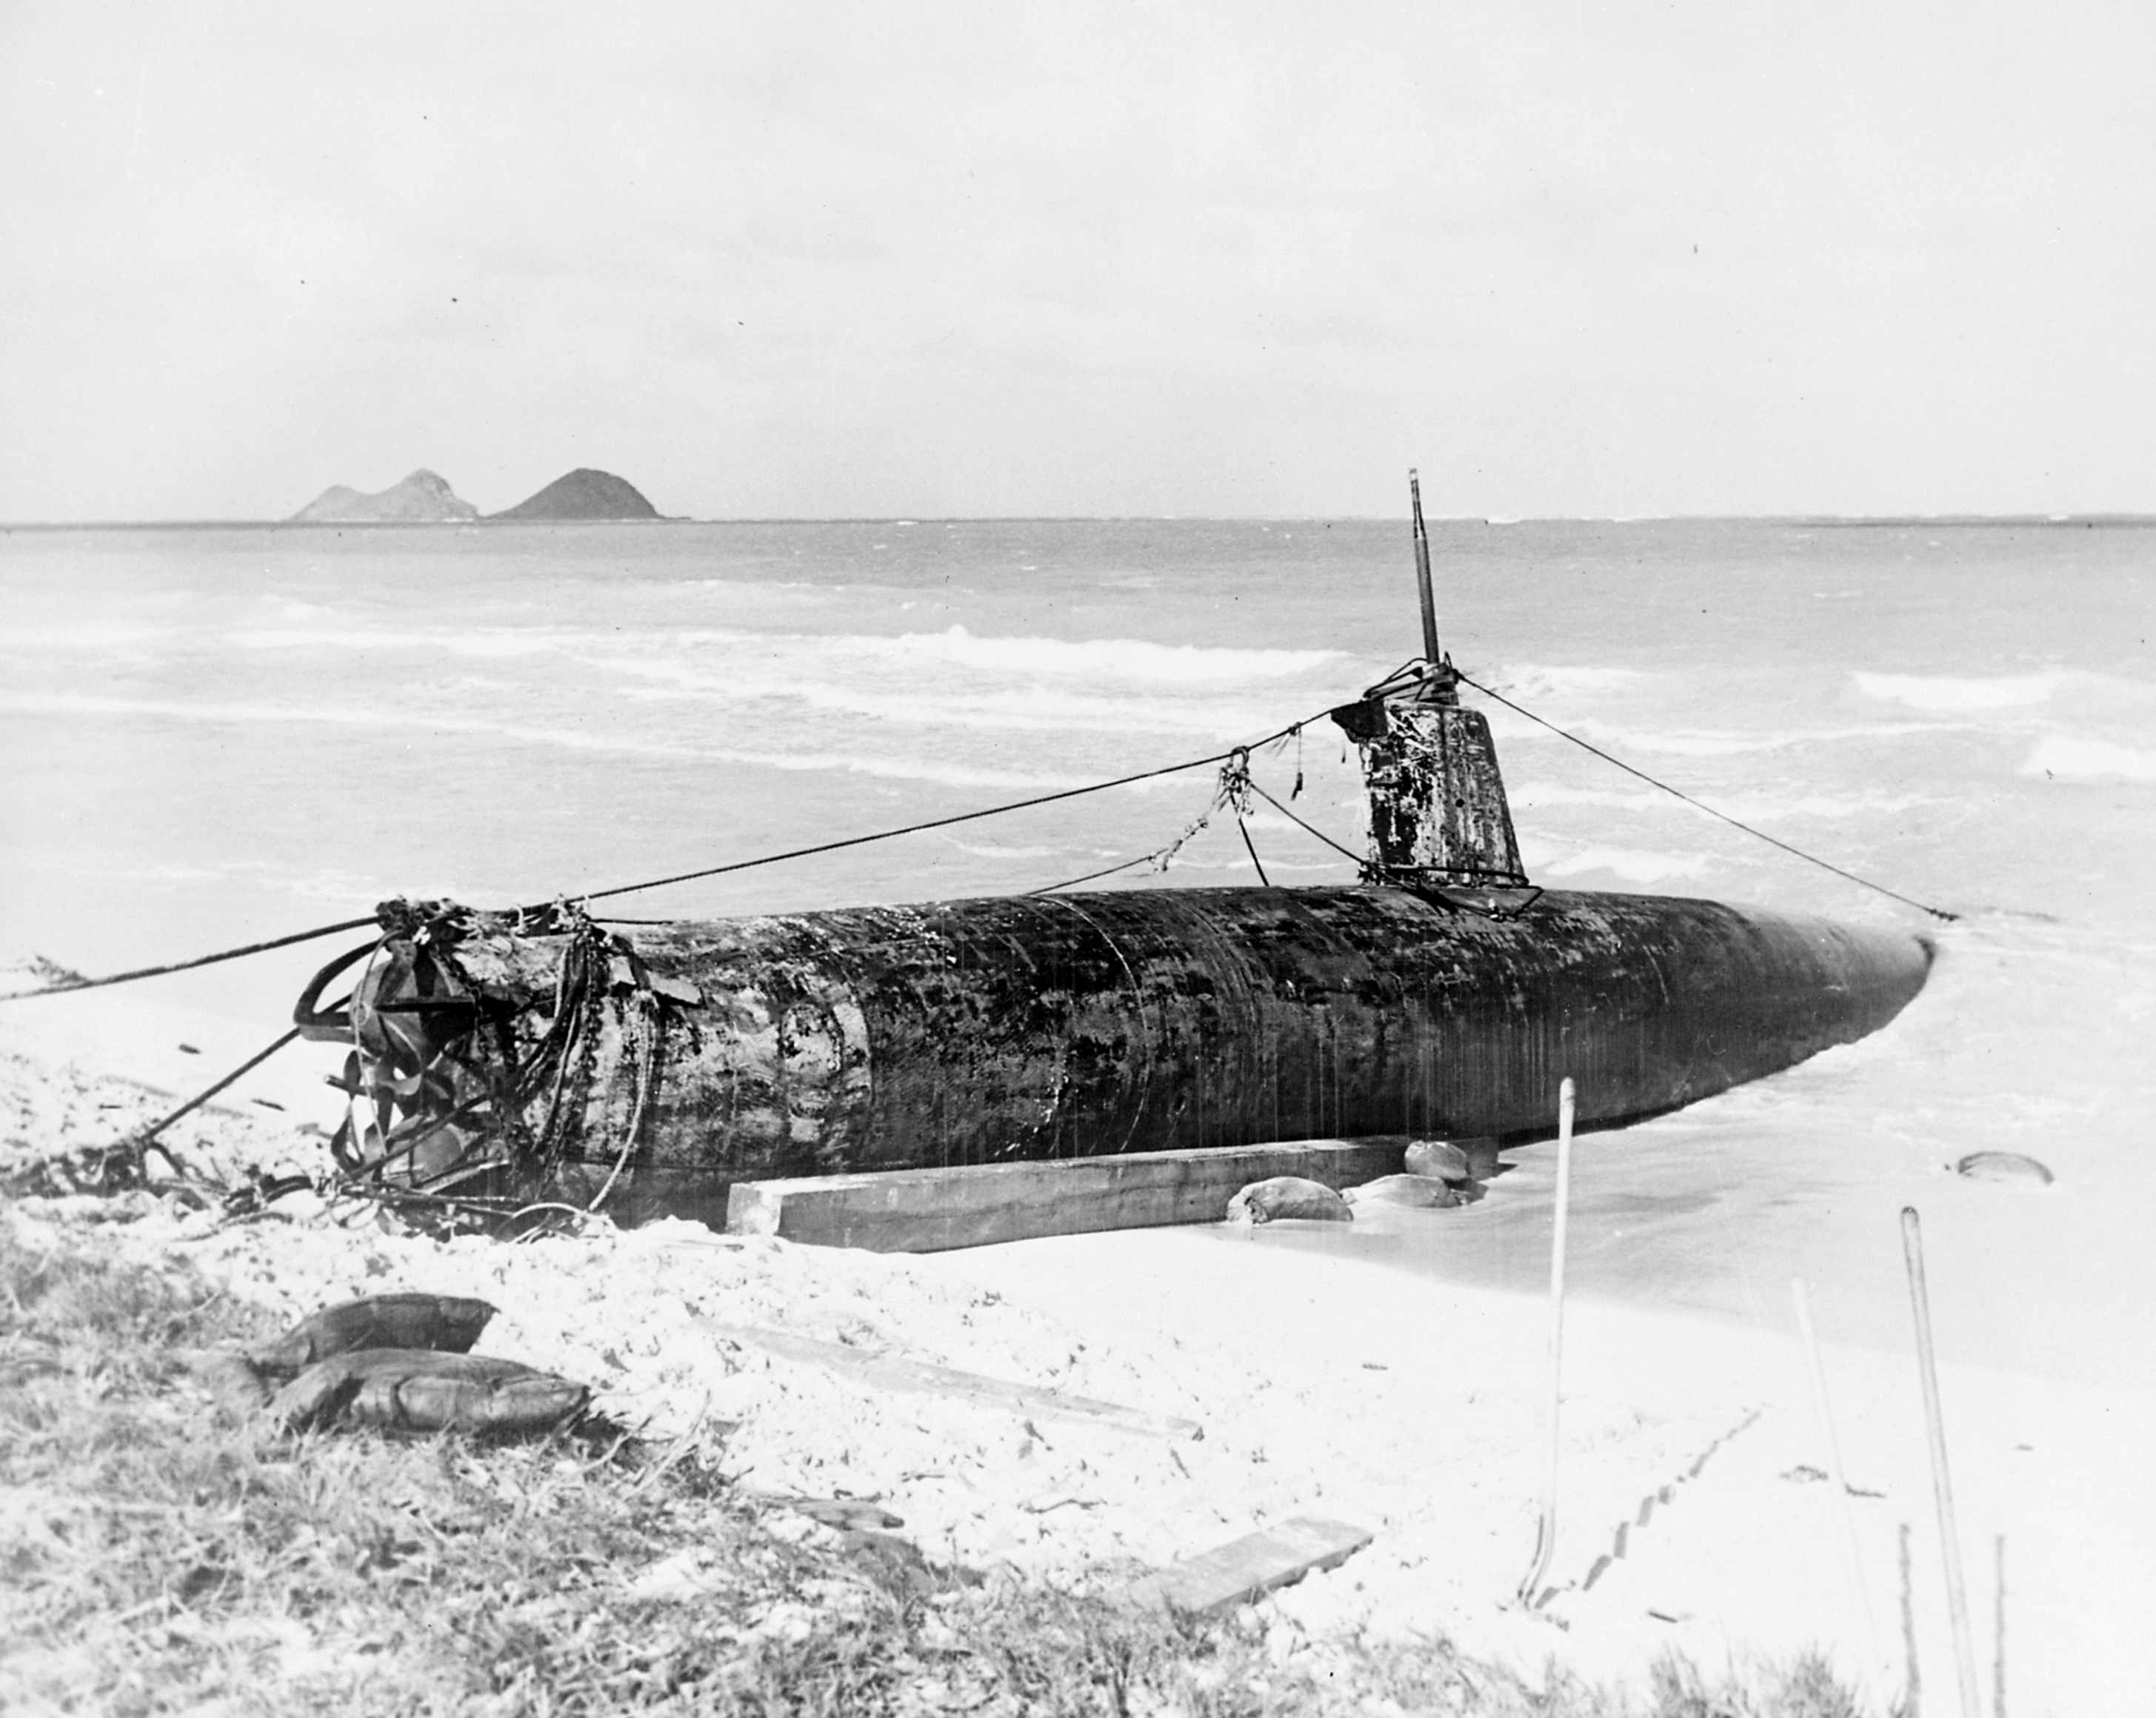 http://upload.wikimedia.org/wikipedia/commons/6/66/Attack_on_Pearl_Harbor_Japanese_minisub.jpg